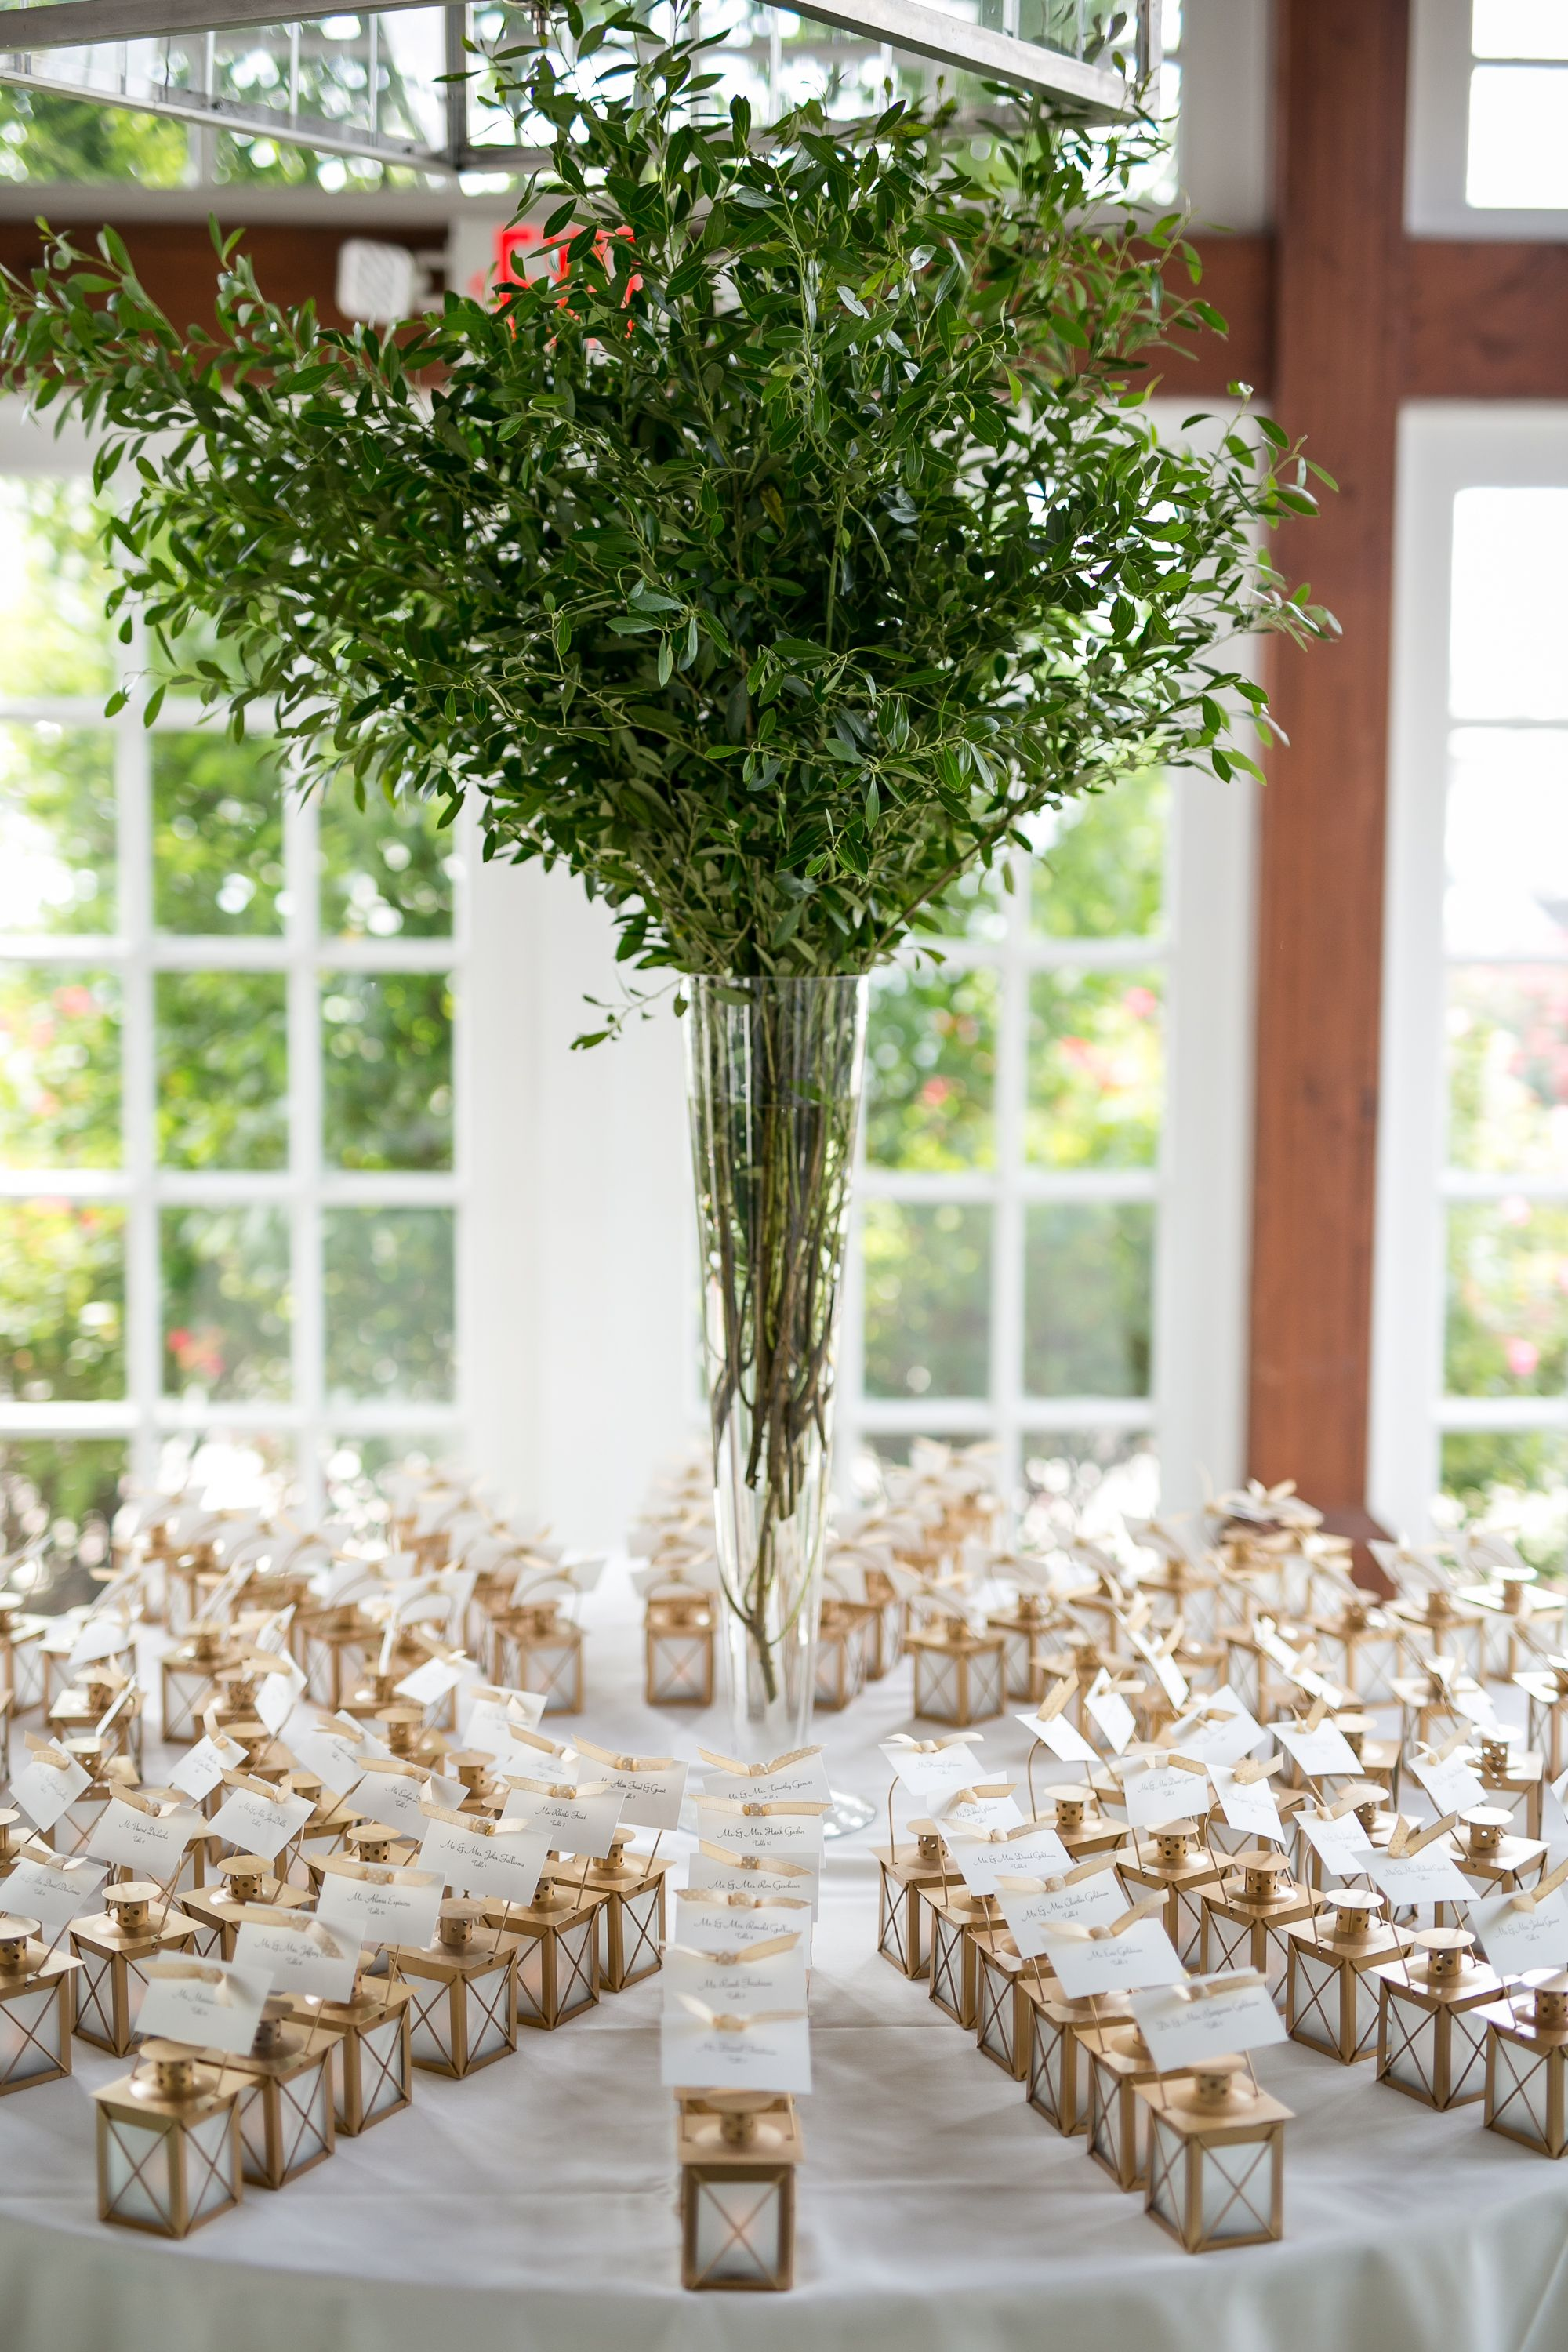 Greenery Wedding Placecards Escort Cards Mini Lanterns With